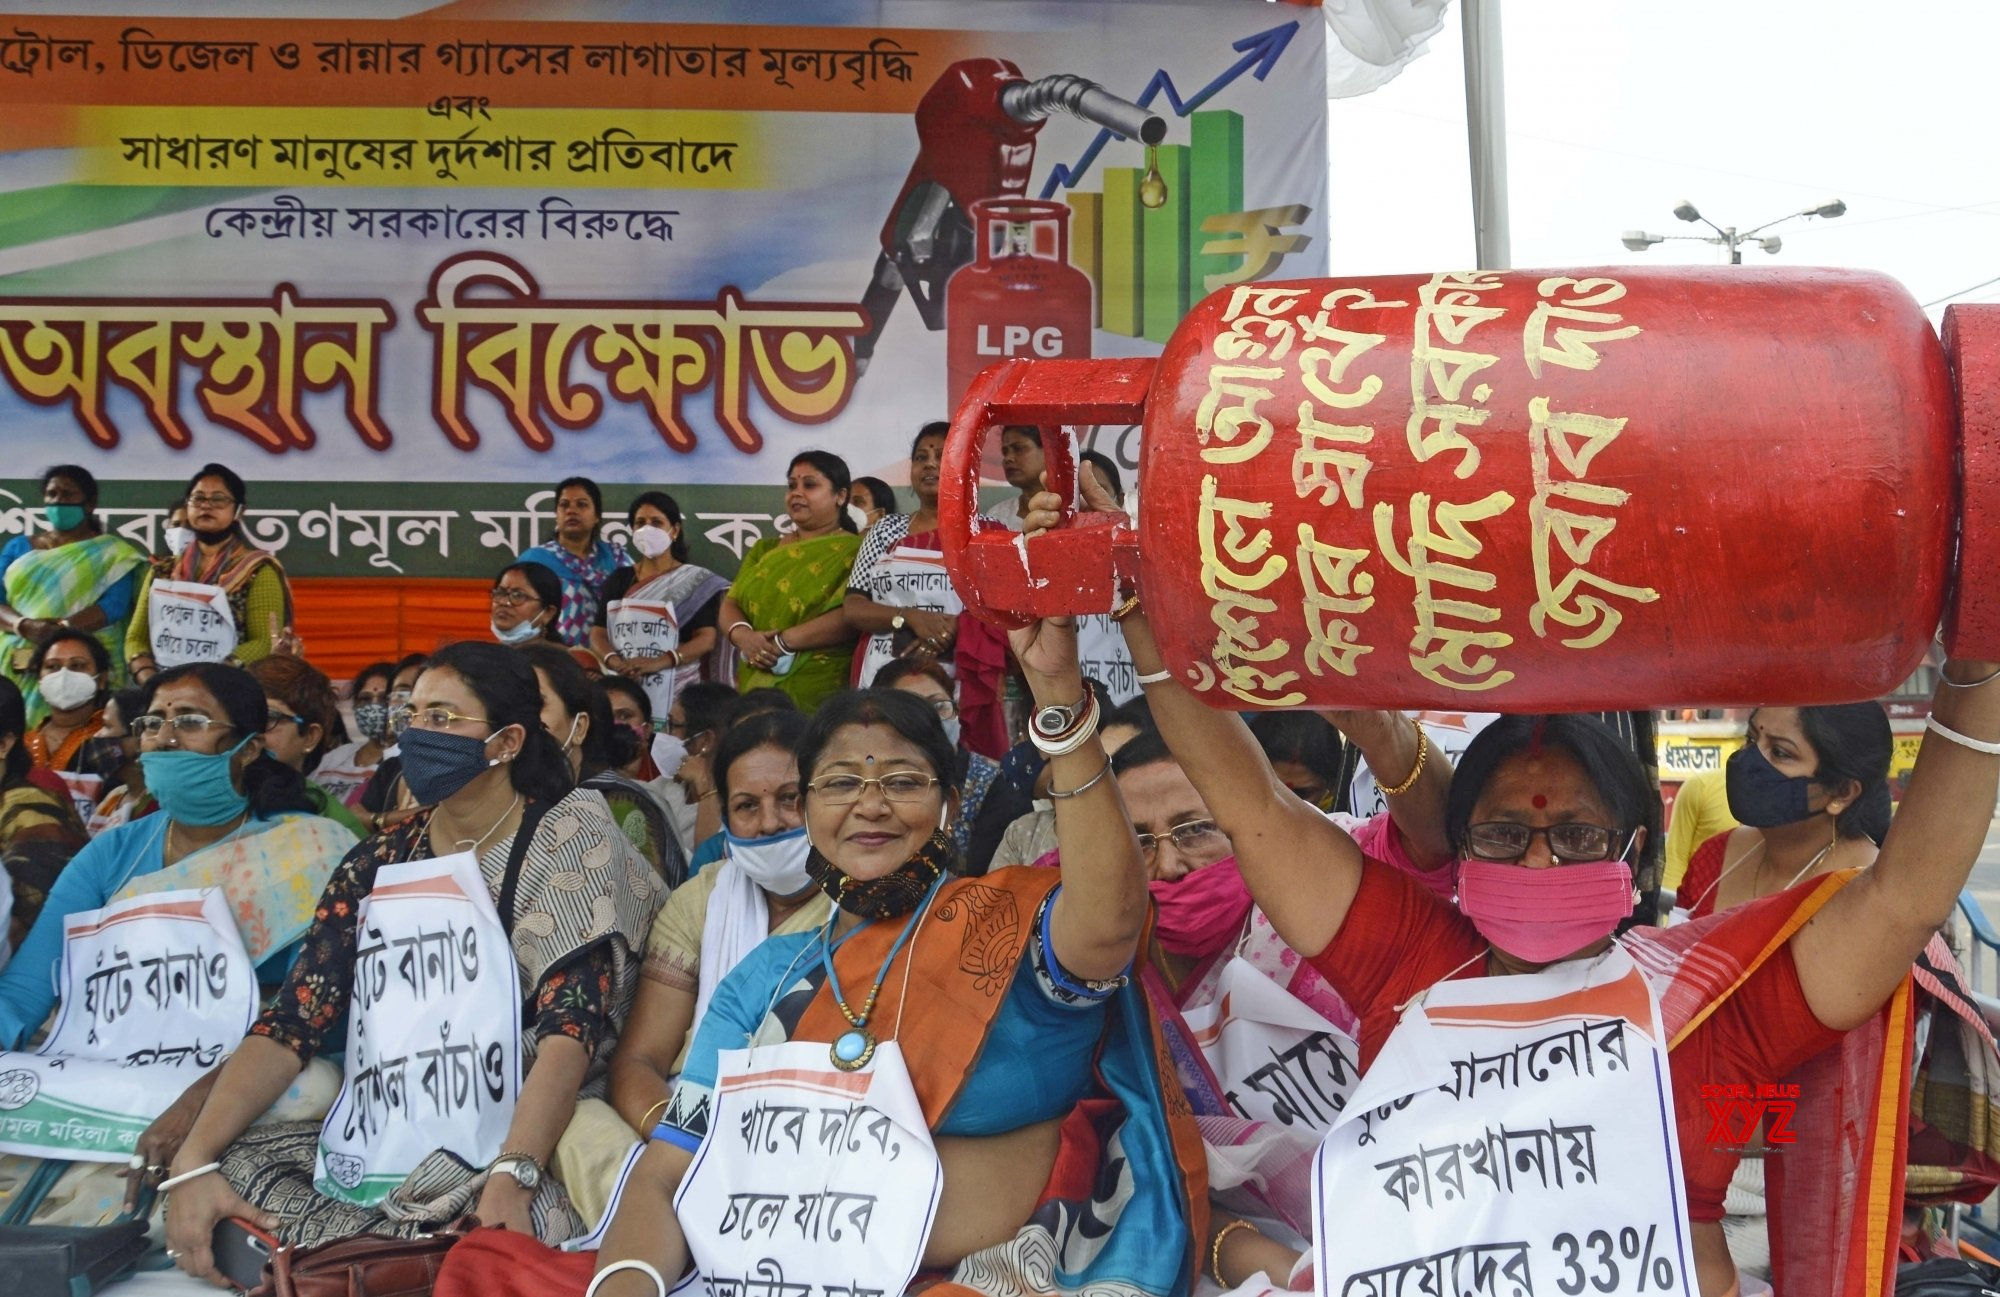 Kolkata: TMC women leaders and activists took part in a protest against fuel price hike in Kolkata on Monday 22nd February 2021 #Gallery